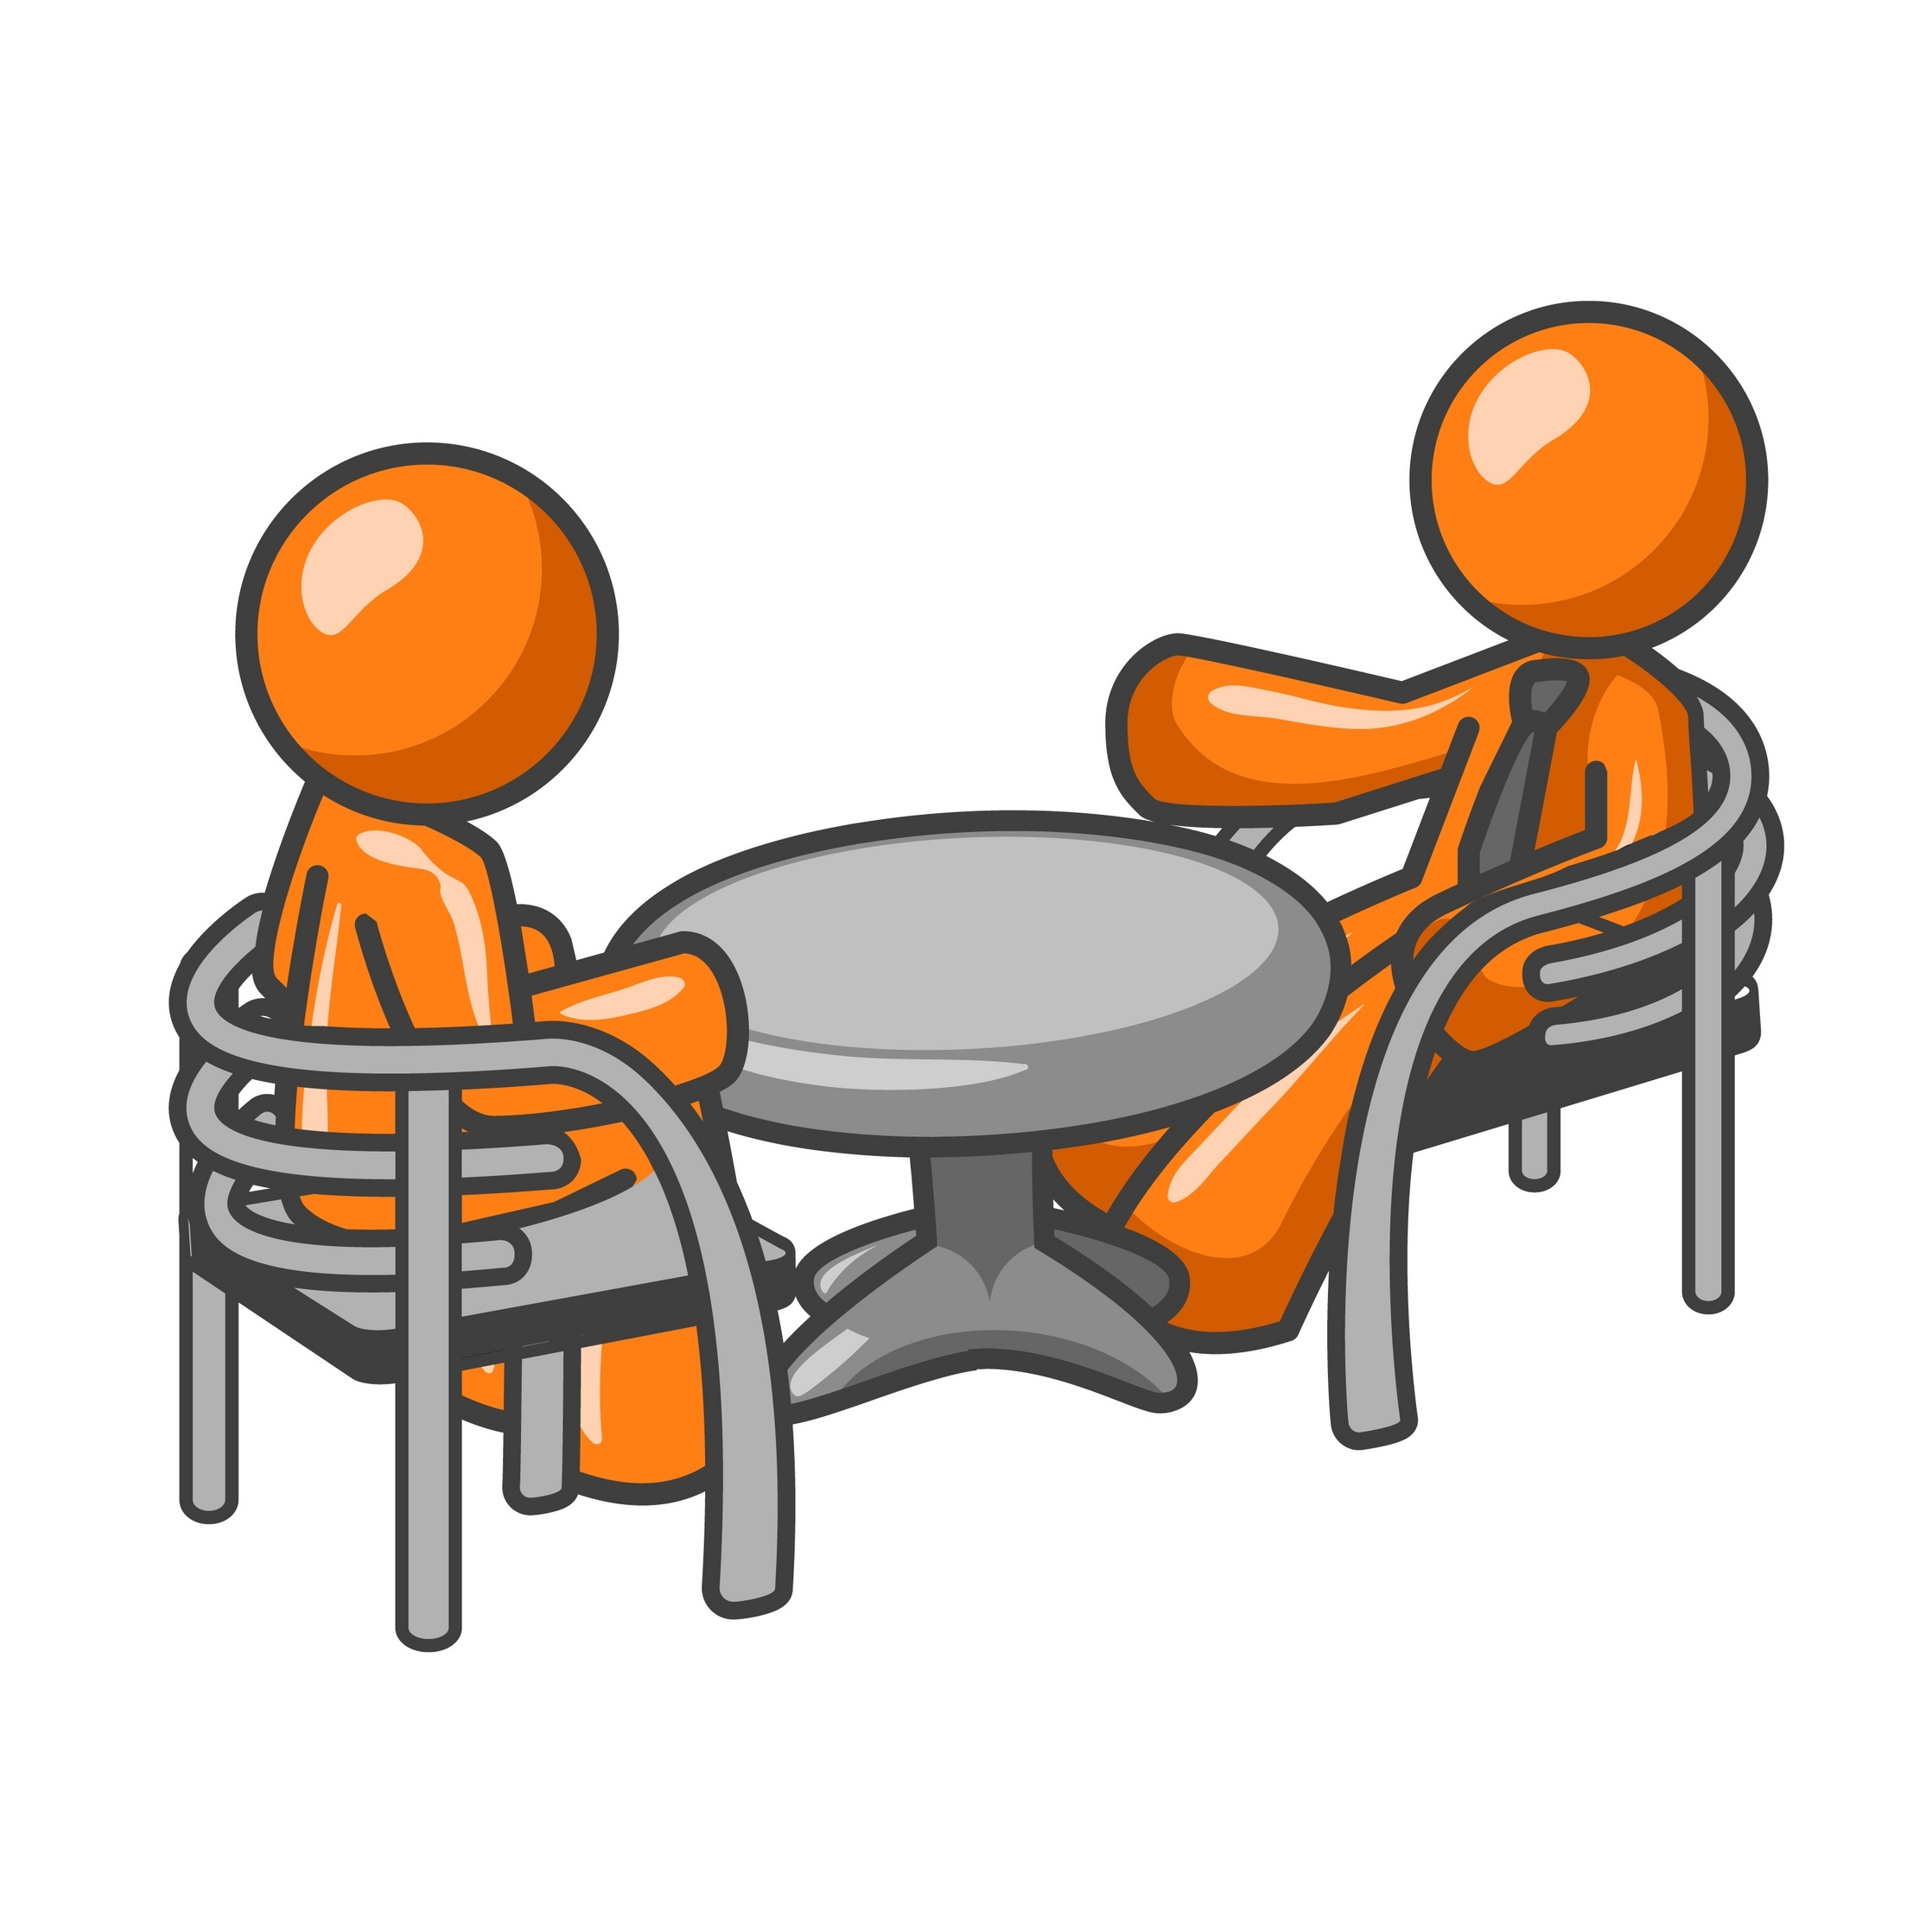 Interview clipart work interview. New gallery digital collection